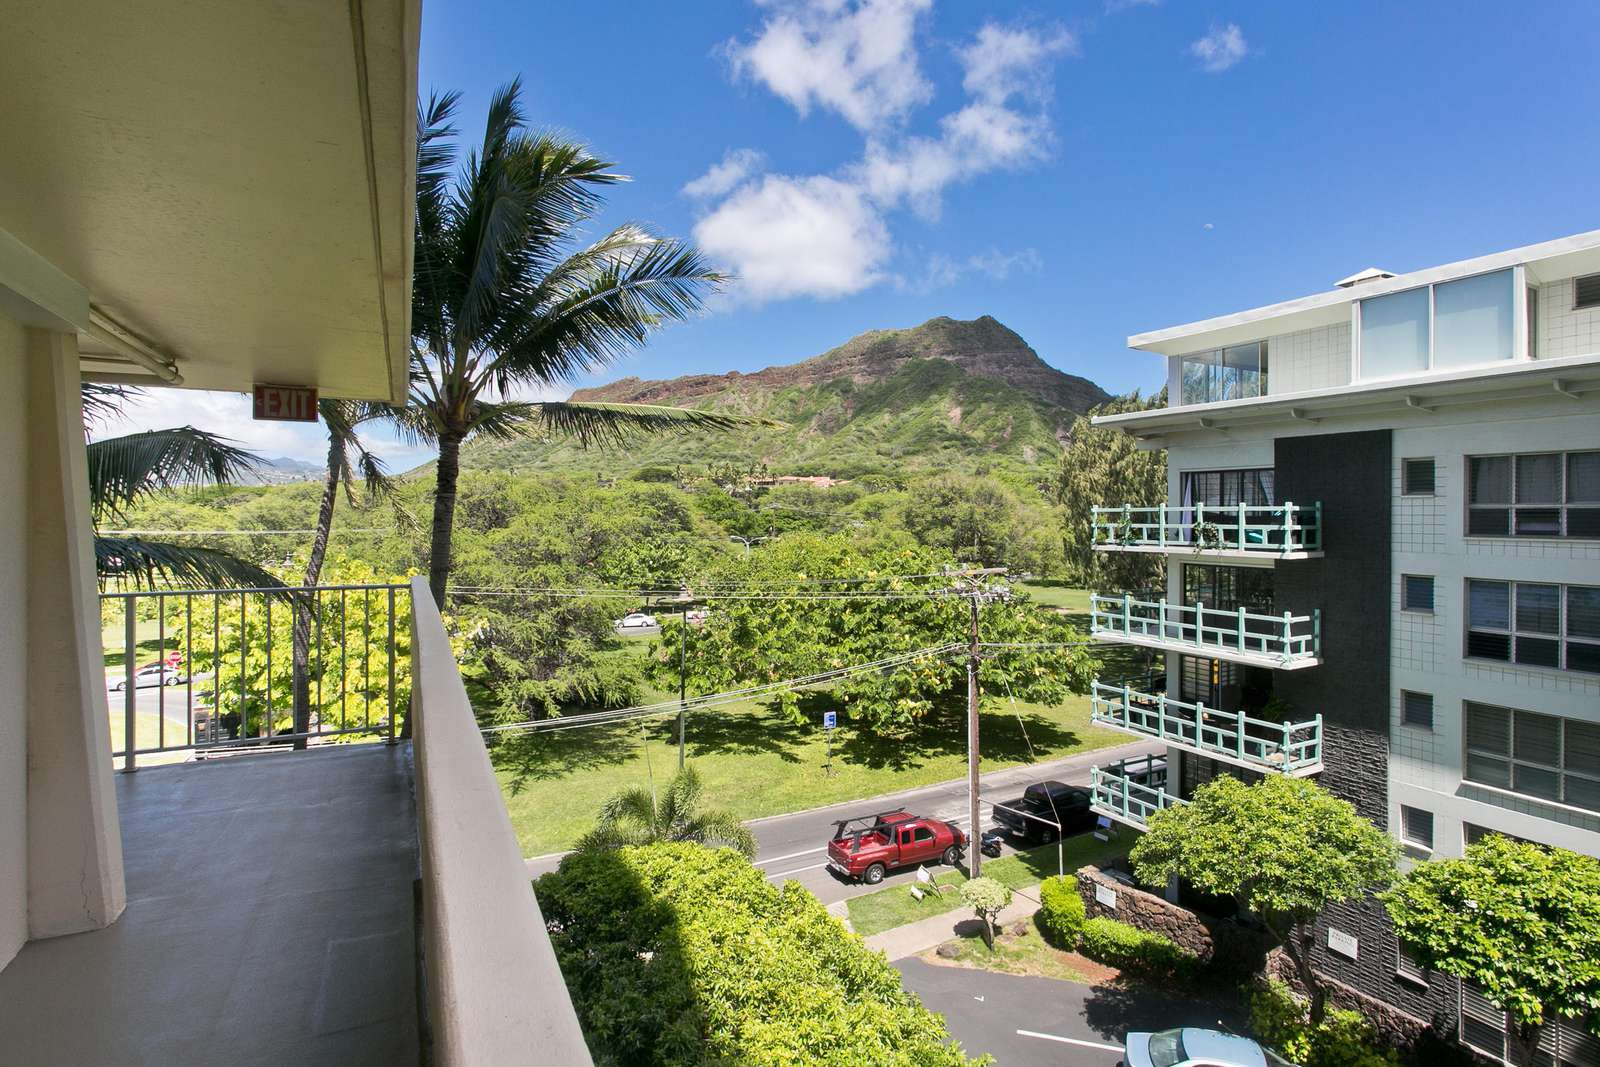 View from your window and front door of the suite. Diamond Head Crater